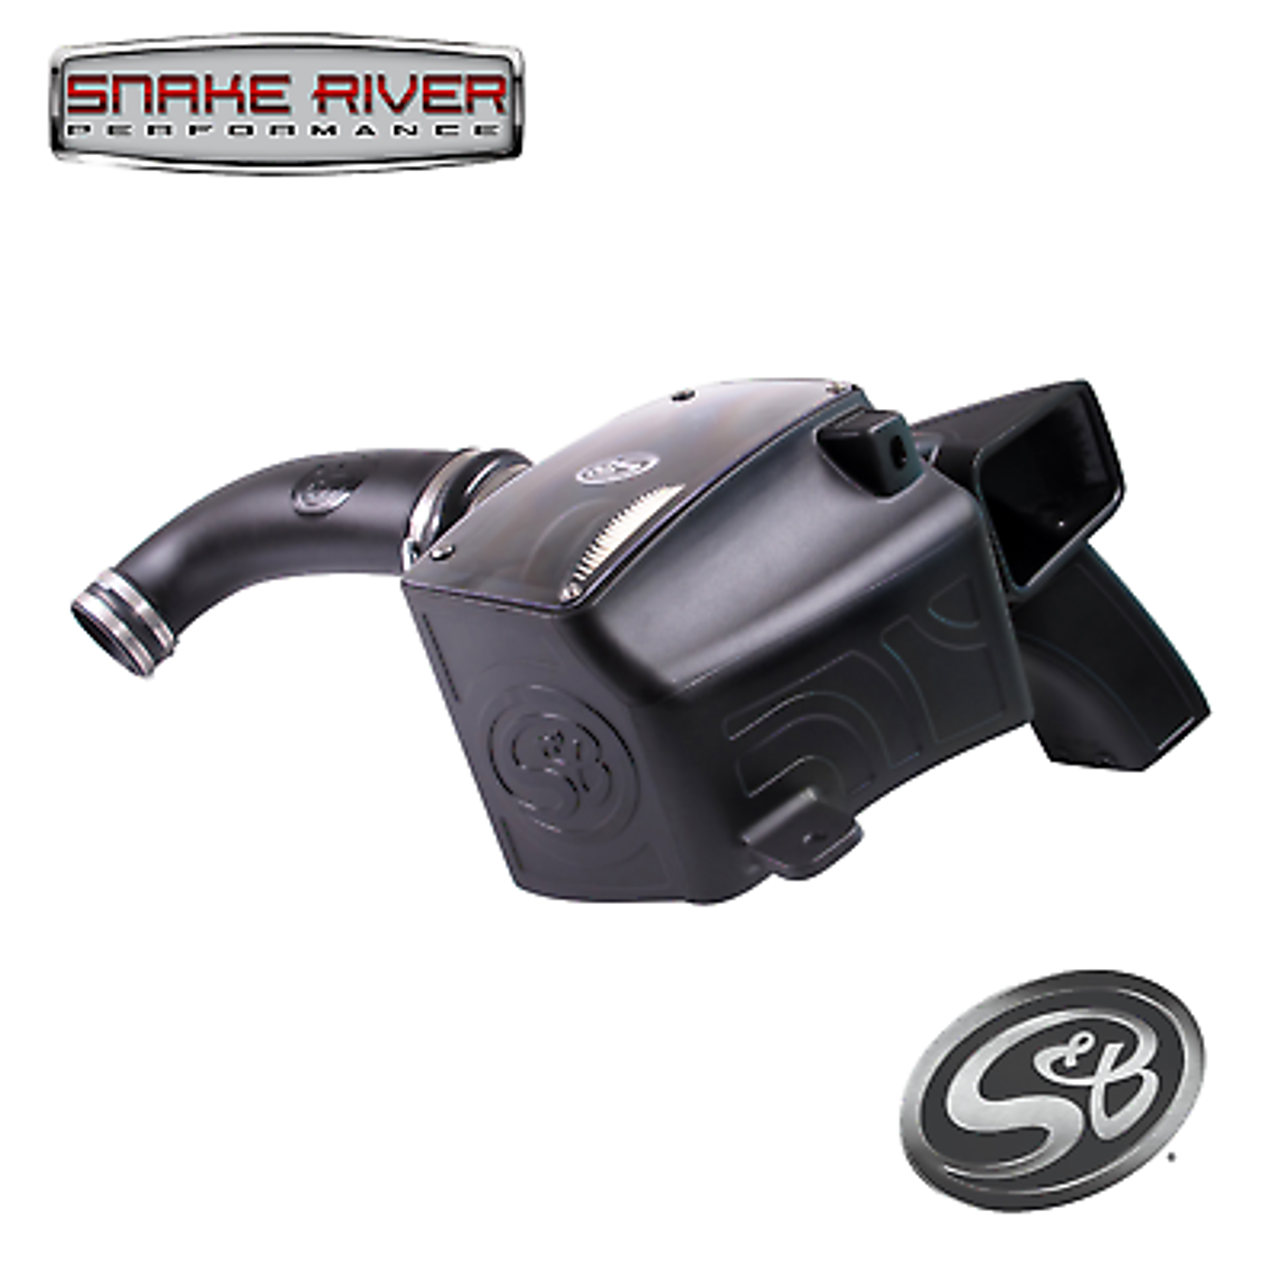 S&B COLD AIR INTAKE FOR 03-08 DODGE RAM 2500 3500 06-08 RAM 1500 5.7L DRY FILTER